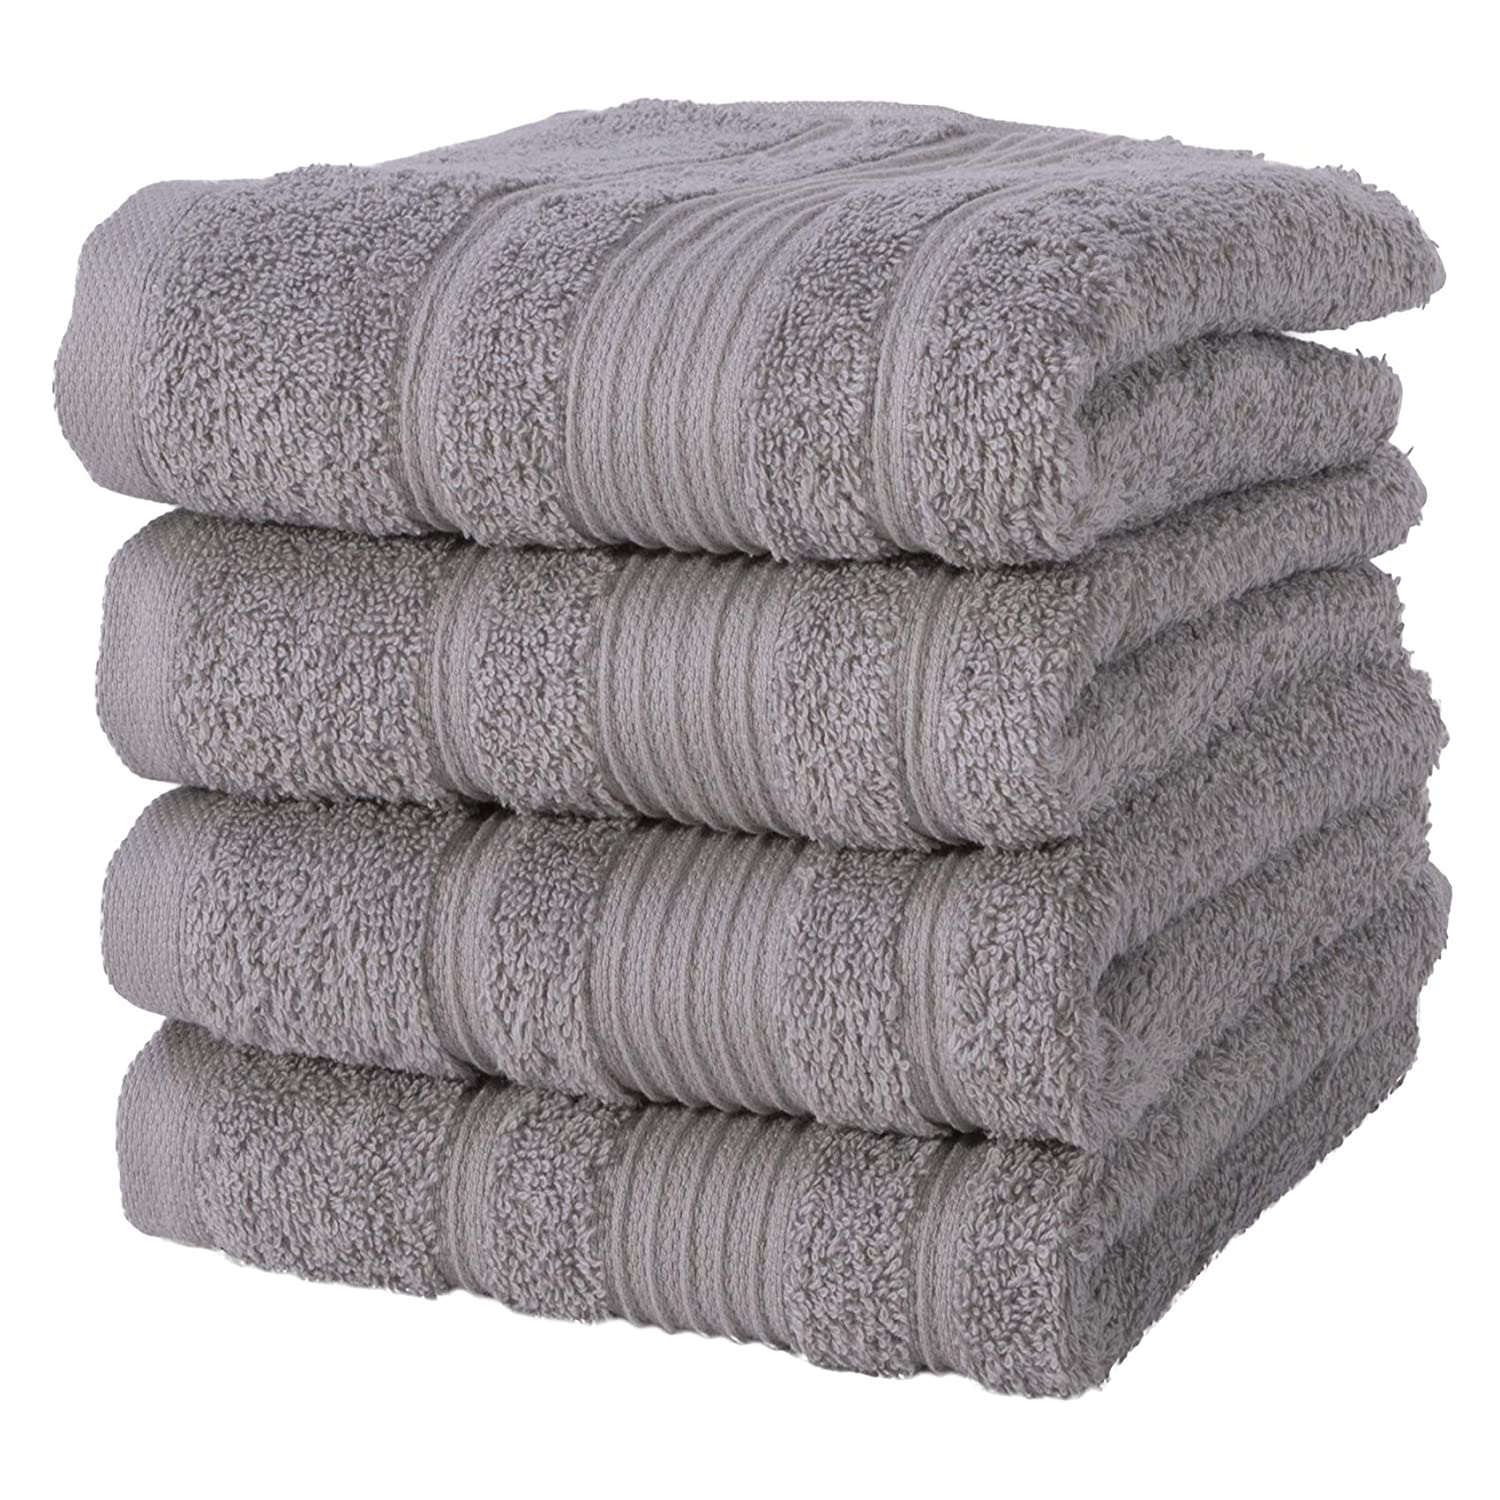 Qute Home Hand Towels - 4 Pack, (16 x 30 inches) | 100% Turkish Cotton | Super Soft Highly Absorbent | Spa & Hotel Quality Towels (Grey)